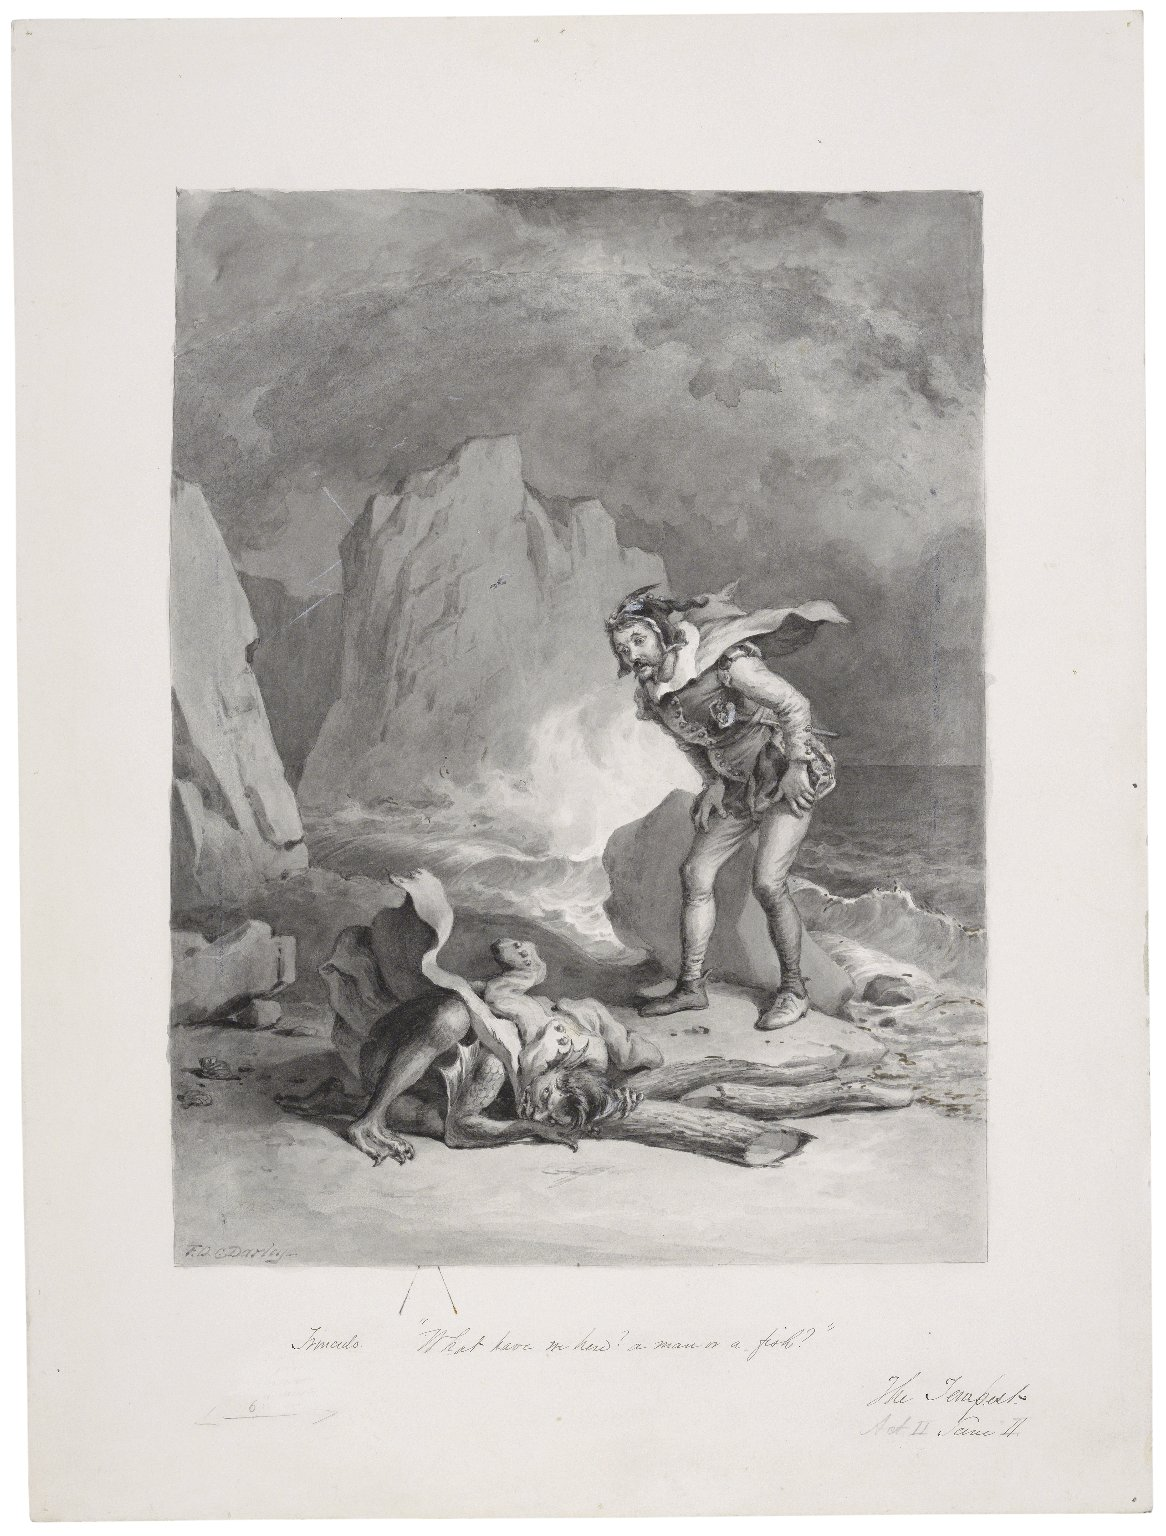 colonialism in the tempest Does shakespeare ultimately come out for or against colonialism in the tempest  the tempest is known as shakespeare's response to colonialism and the.